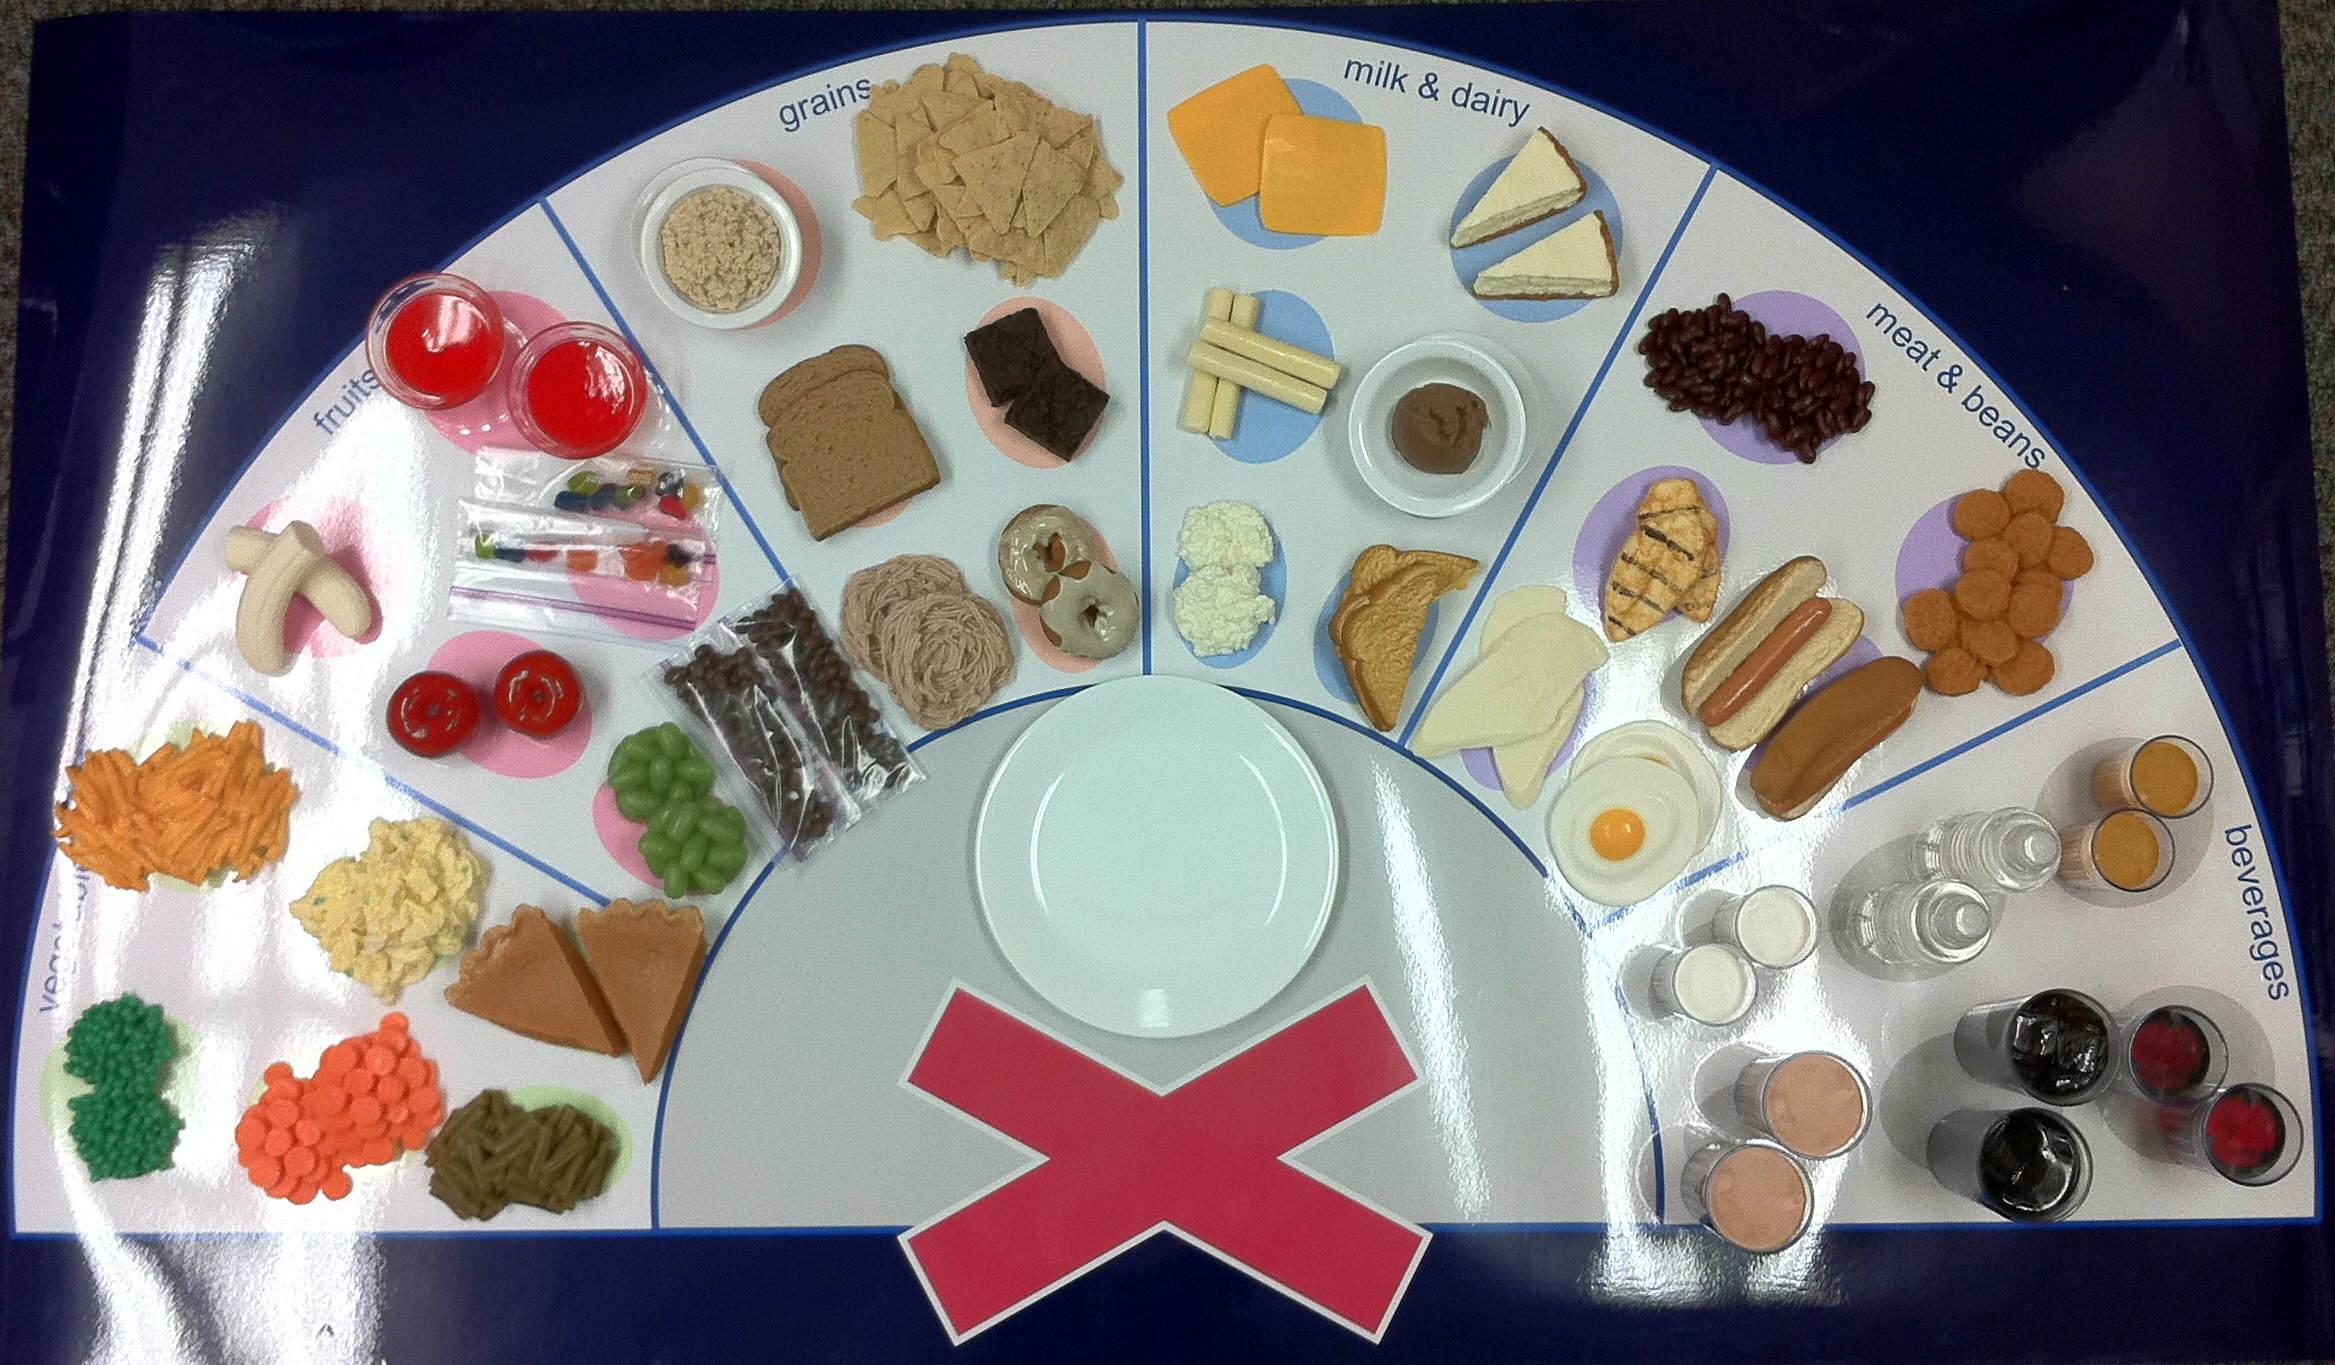 Placemat Protocol is an innovative, powerful, and fun tool to gauge preschoolers' perceptions of healthy meals and to teach them how to improve the nutritional value of their meals. Children create pretend meals on a real plate using life-size, realistic food models arranged on a large, colorful floor mat. Image credit: Kristen Harrison